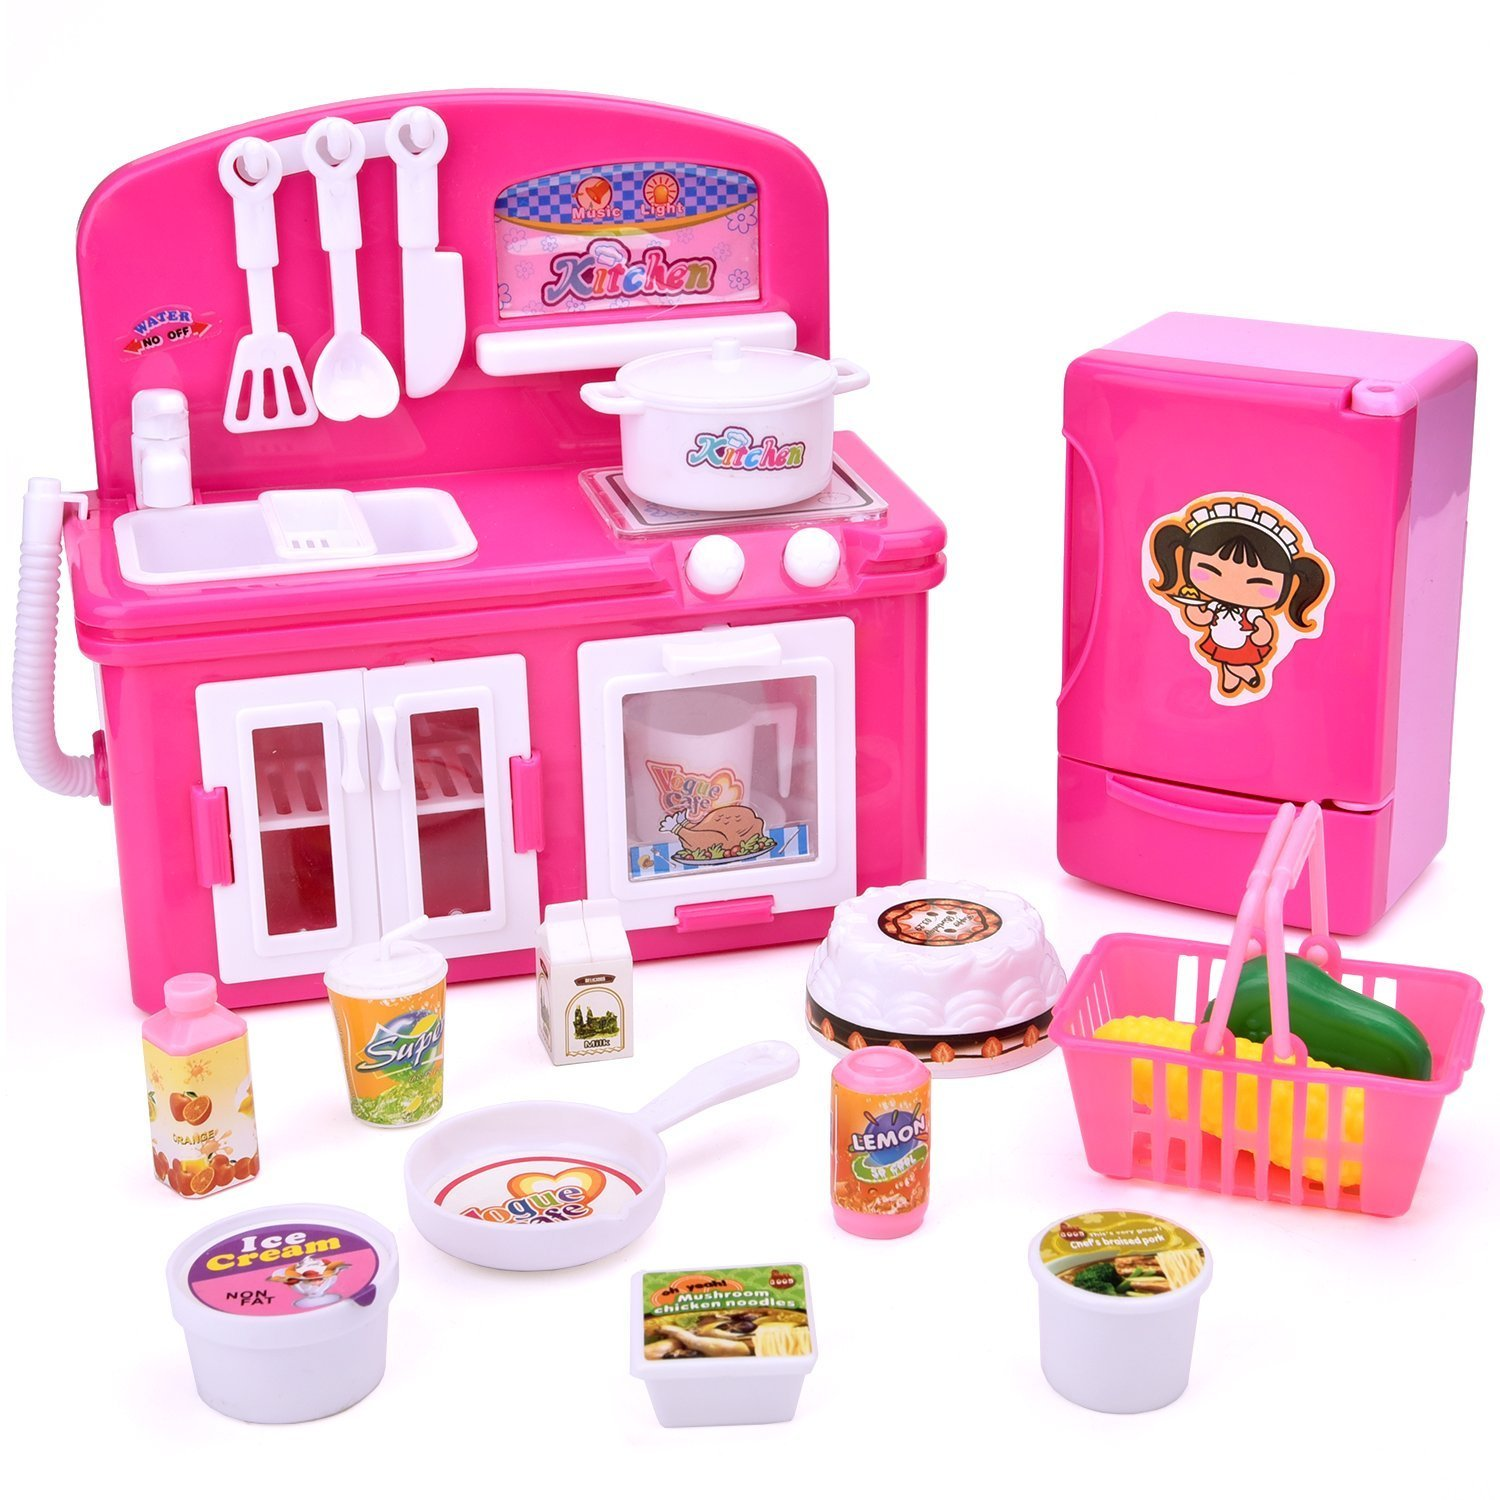 19 PCs Kitchen Appliance Toys with Kitchen, Refrigerator, Pot and Tableware, Pretend Play Set for Kids, Play Kitchen Appliance by FUN LITTLE TOYS